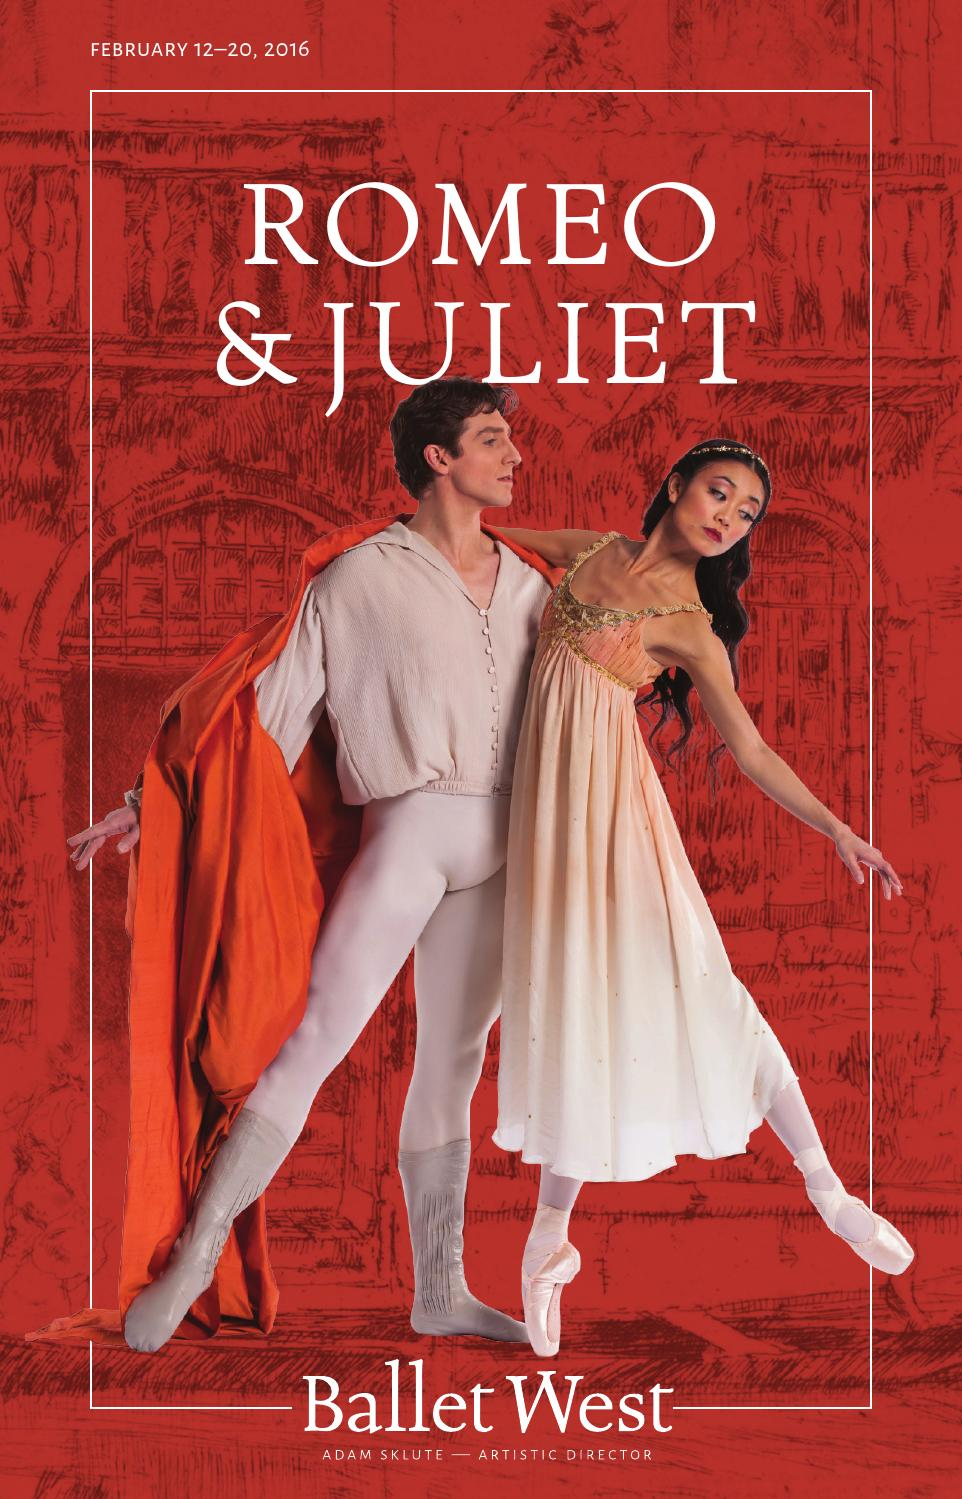 2014 2015 annual report by ballet west issuu romeo and juliet 2016